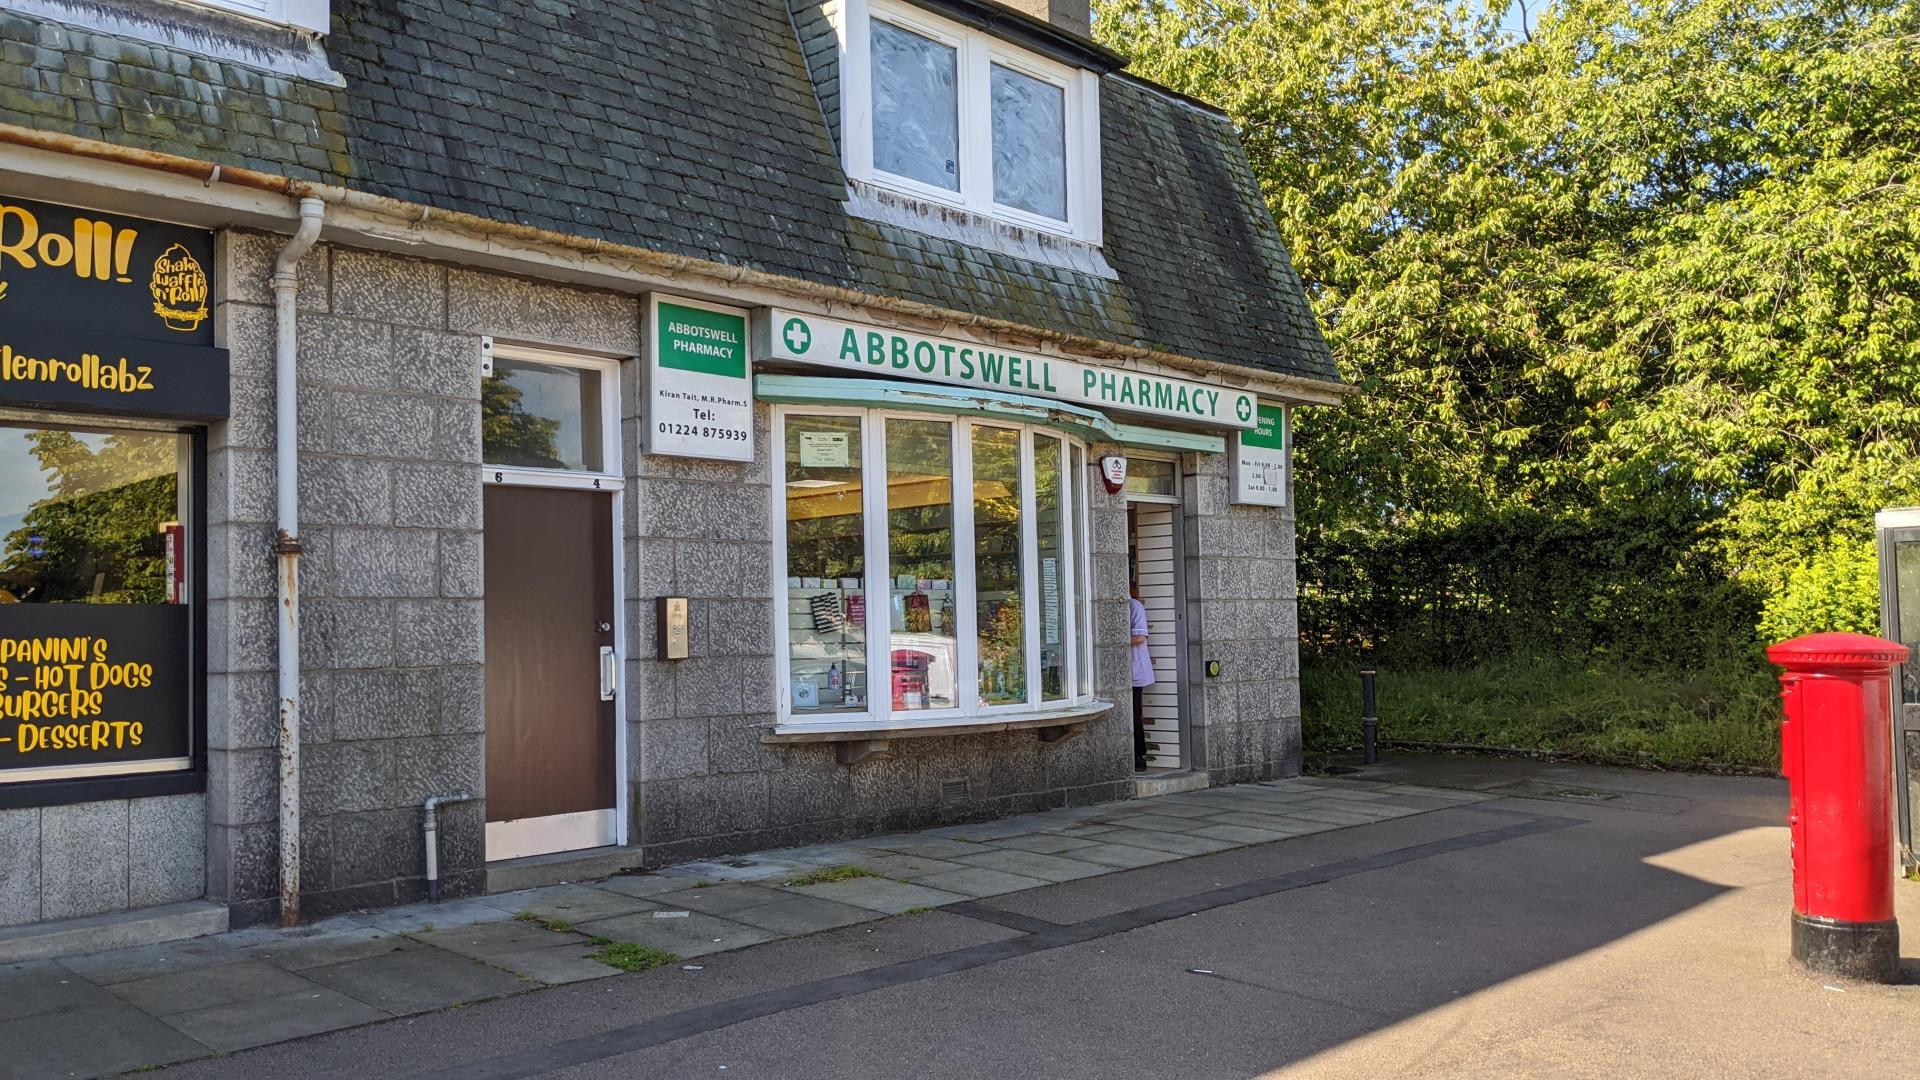 Abbotswell Pharmacy on Abbotswell Crescent